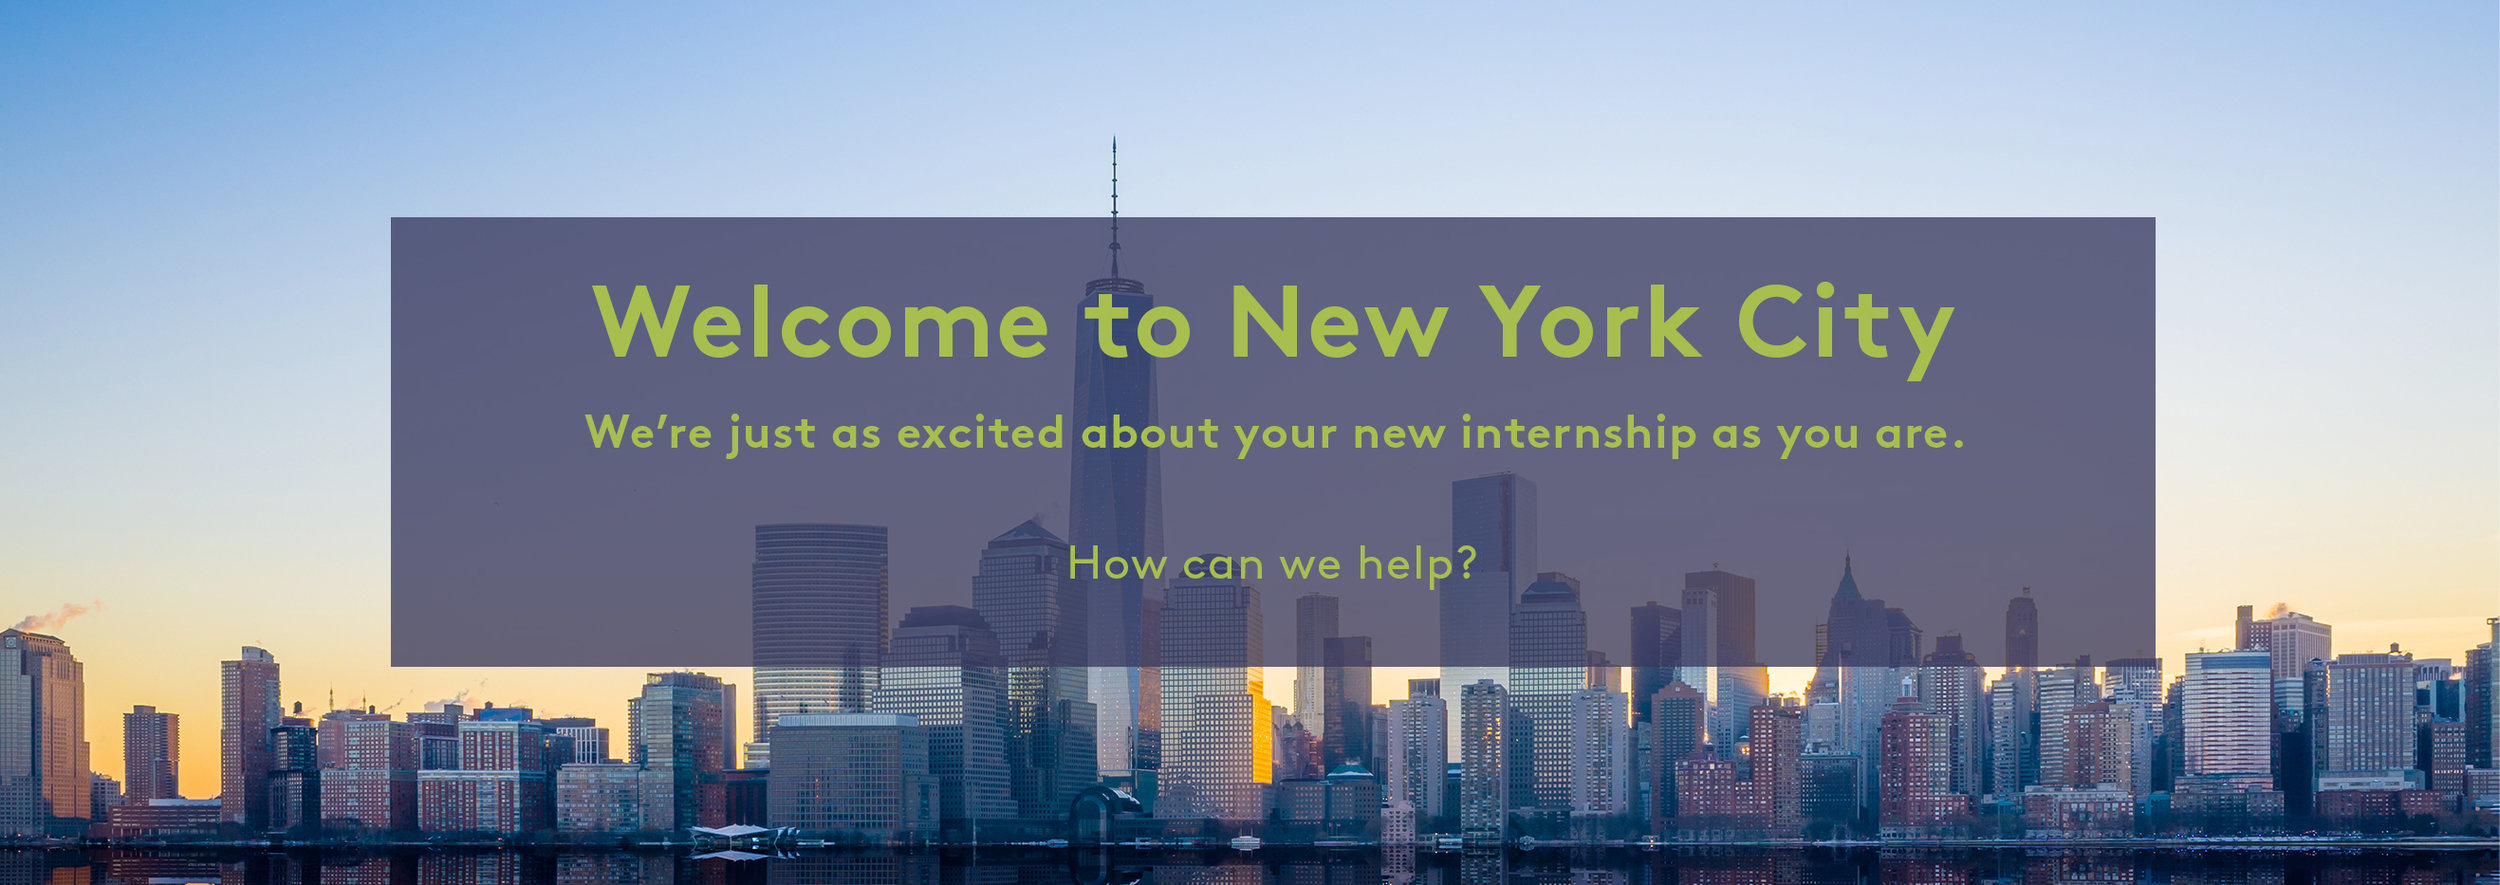 welcome graphic nyc 2.jpg